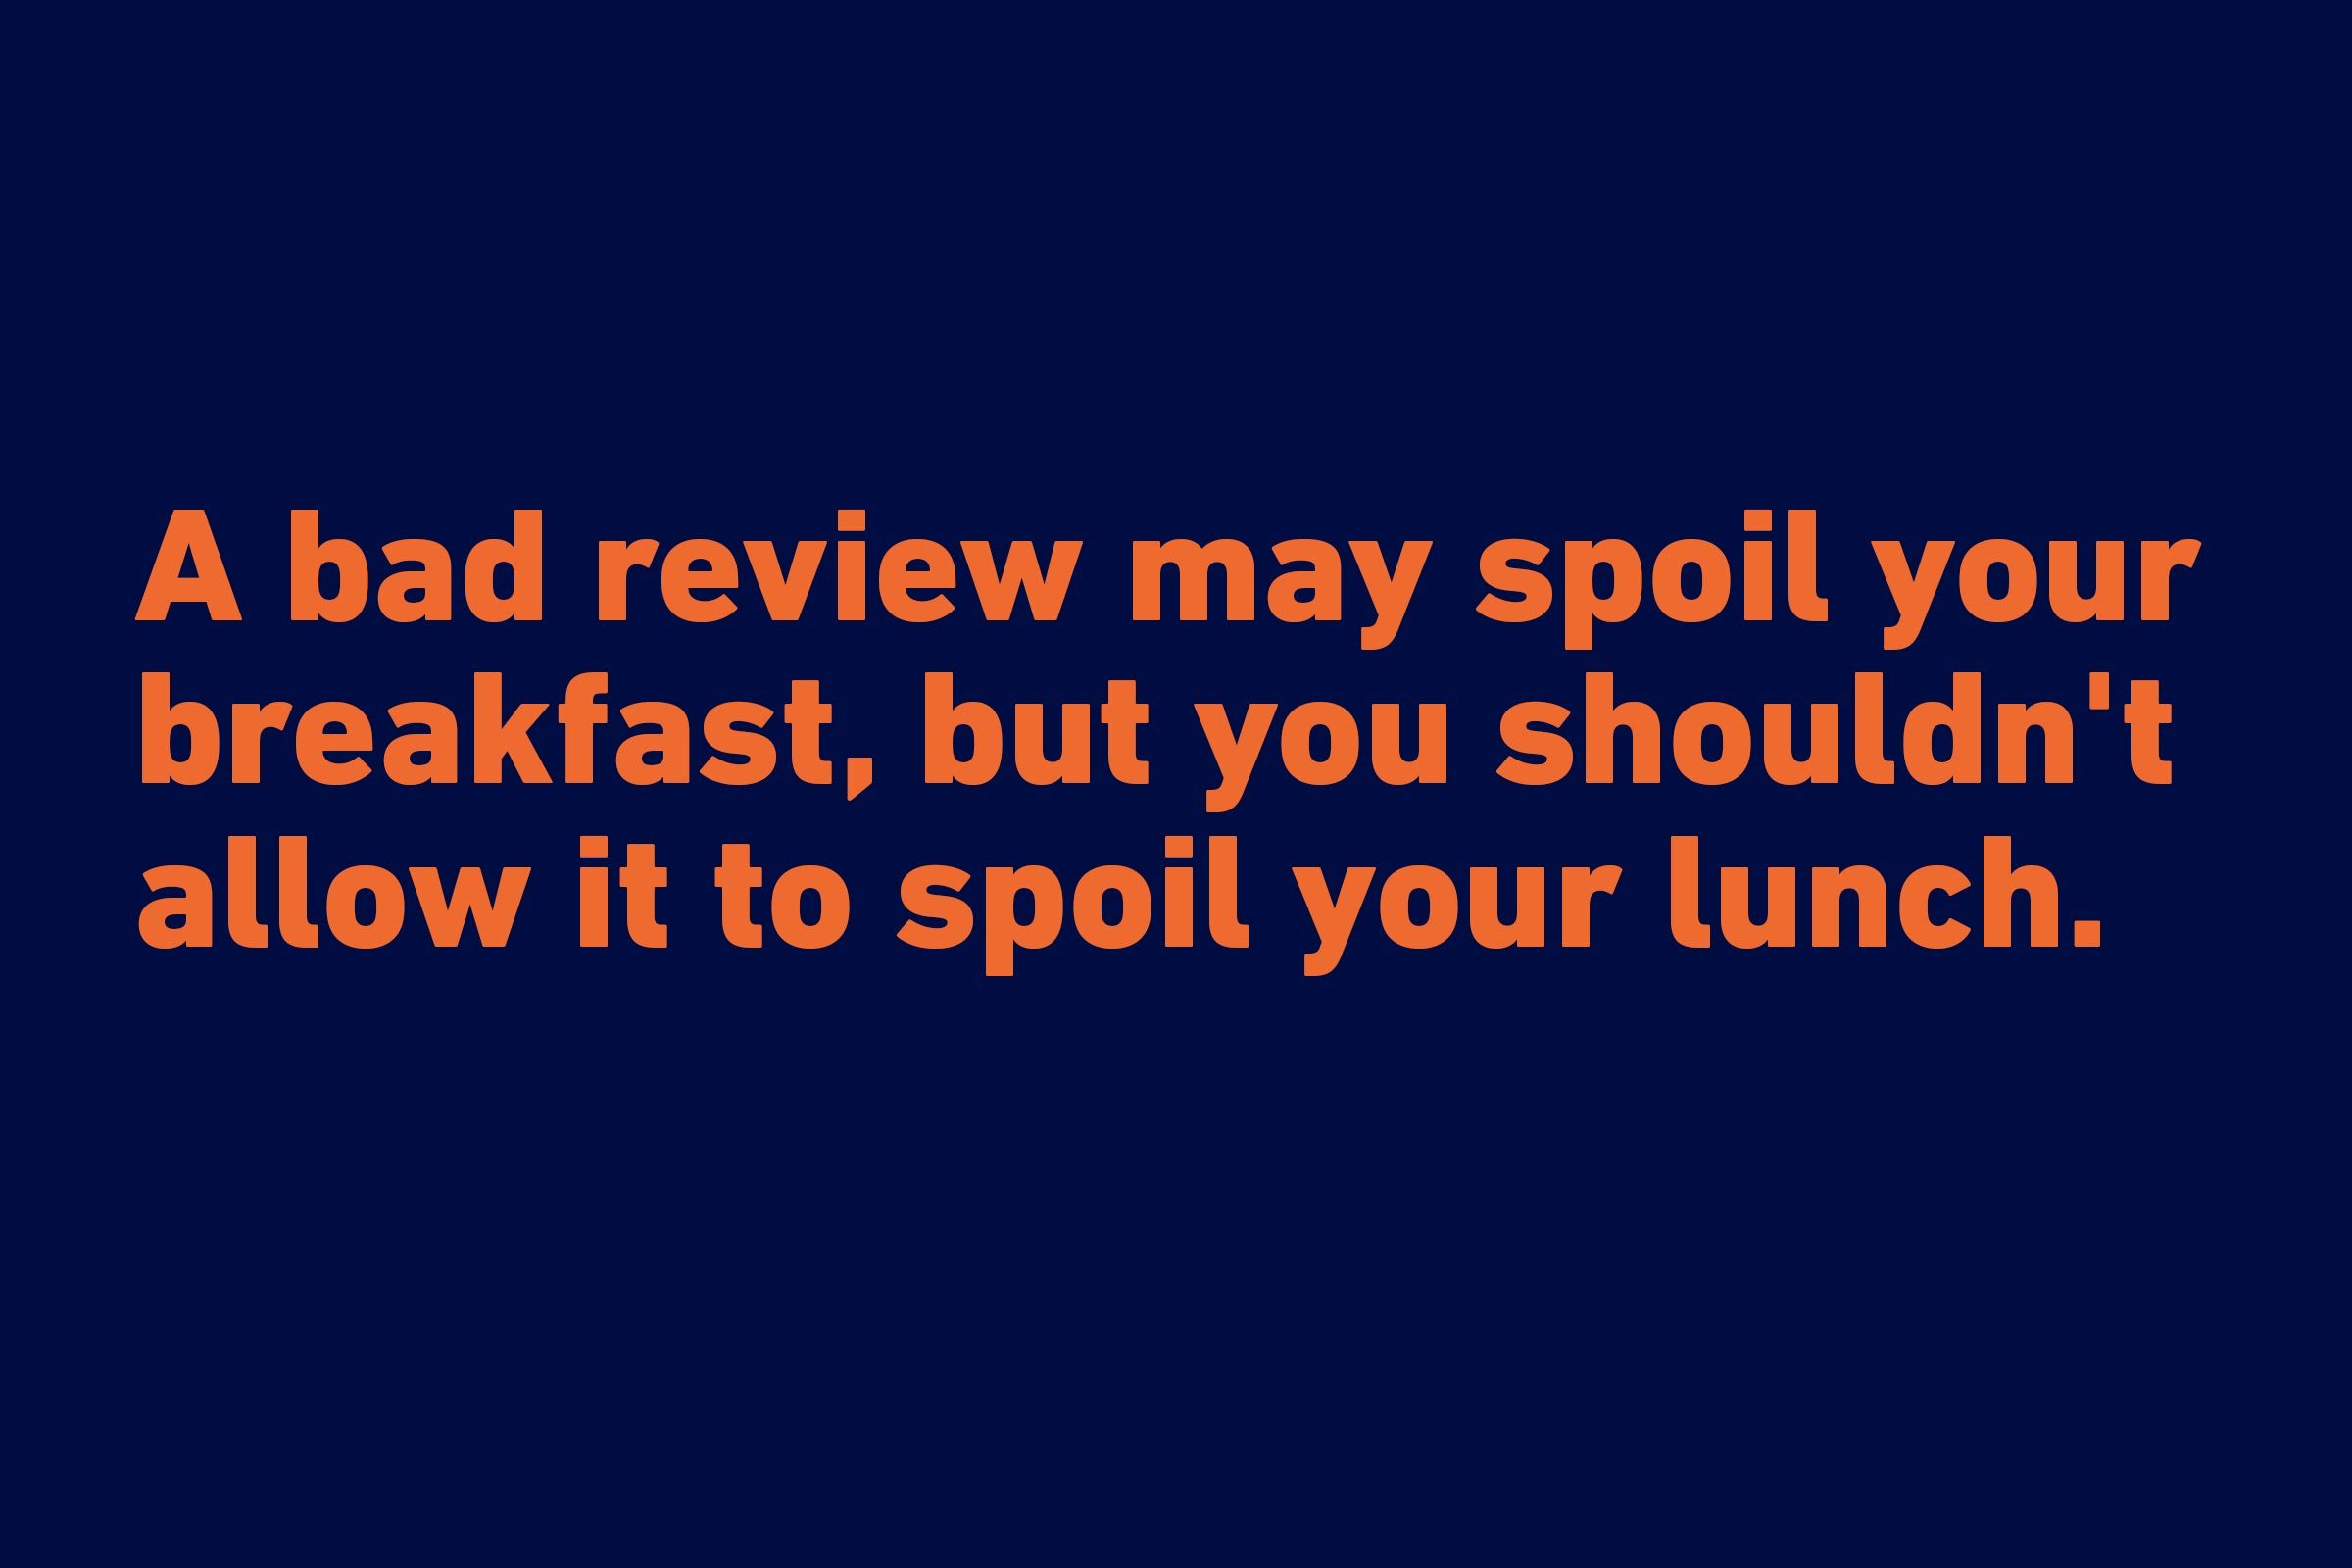 """A bad review may spoil your breakfast, but you shouldn't allow it to spoil your lunch."" —Kingsley Amis"